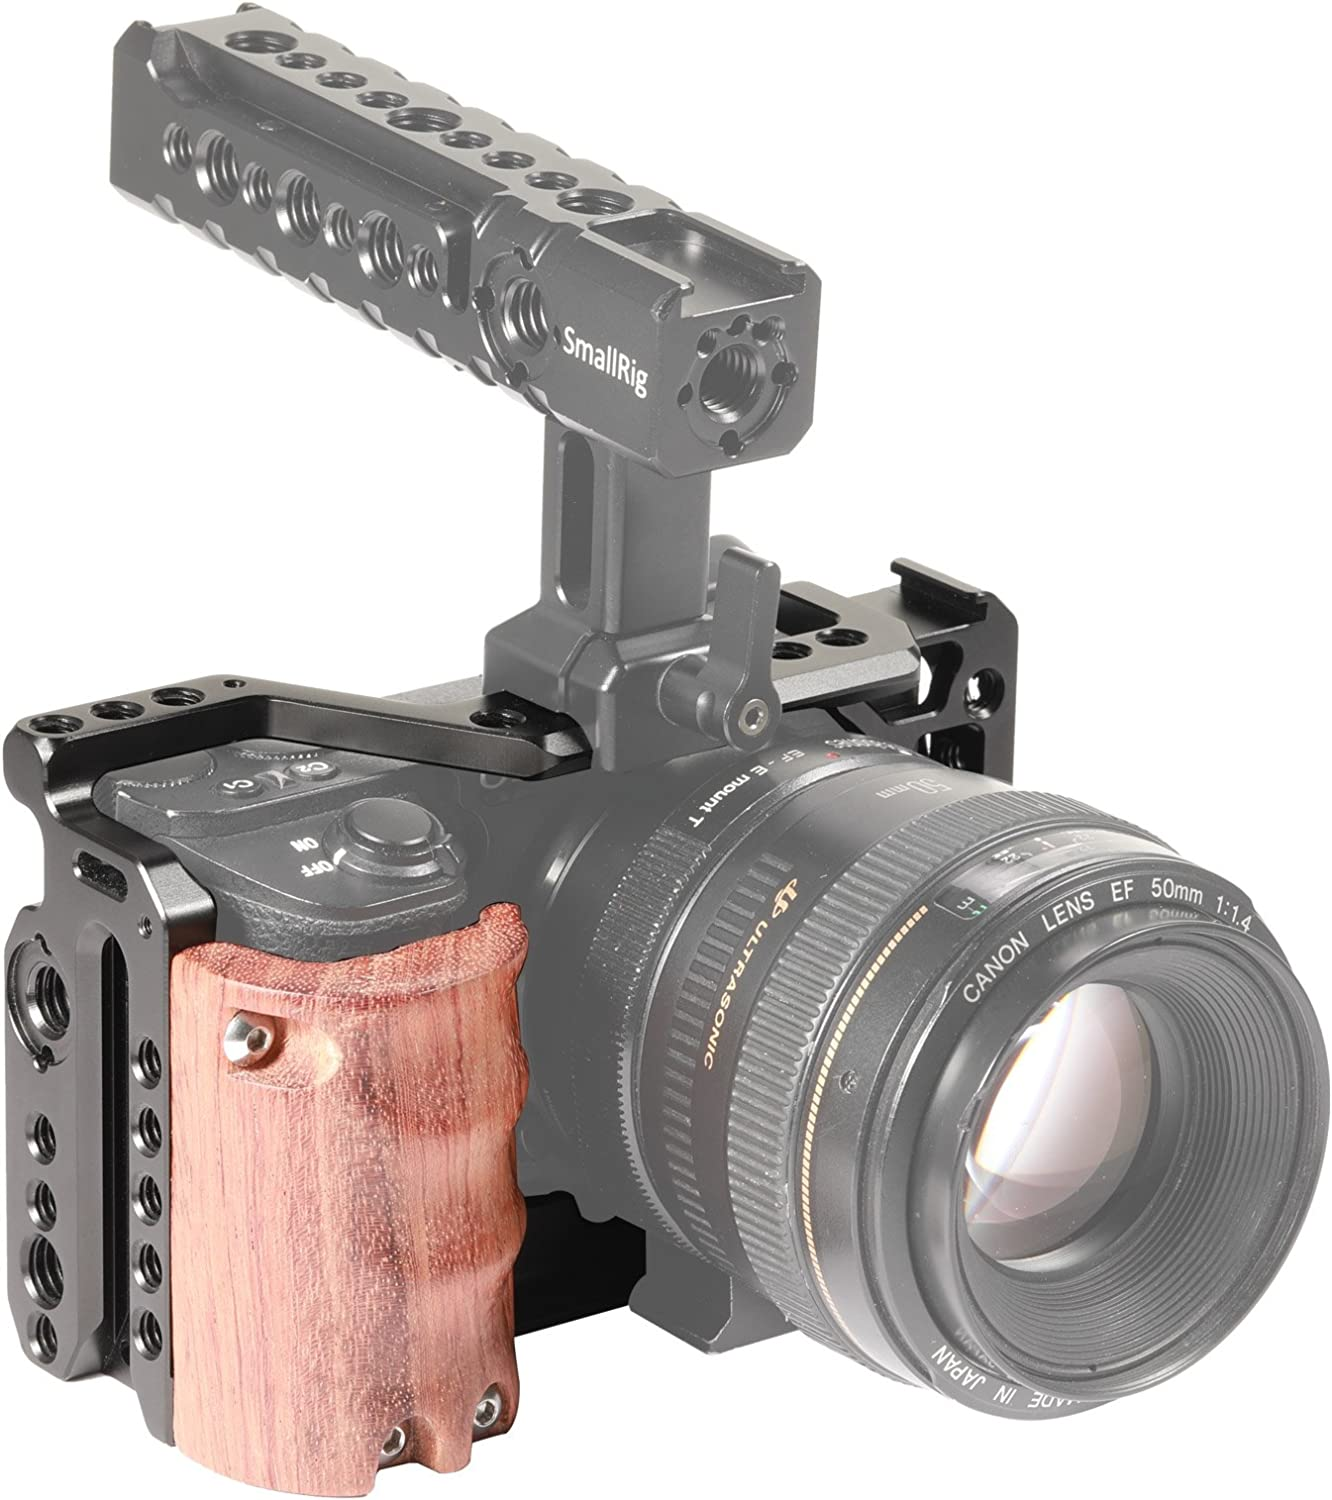 2097 SMALLRIG Camera A6500 Cage Kit with Wooden Handle Hand Grip for Sony Alpha A6500//ILCE-6500 4K Digital Mirrorless Camera